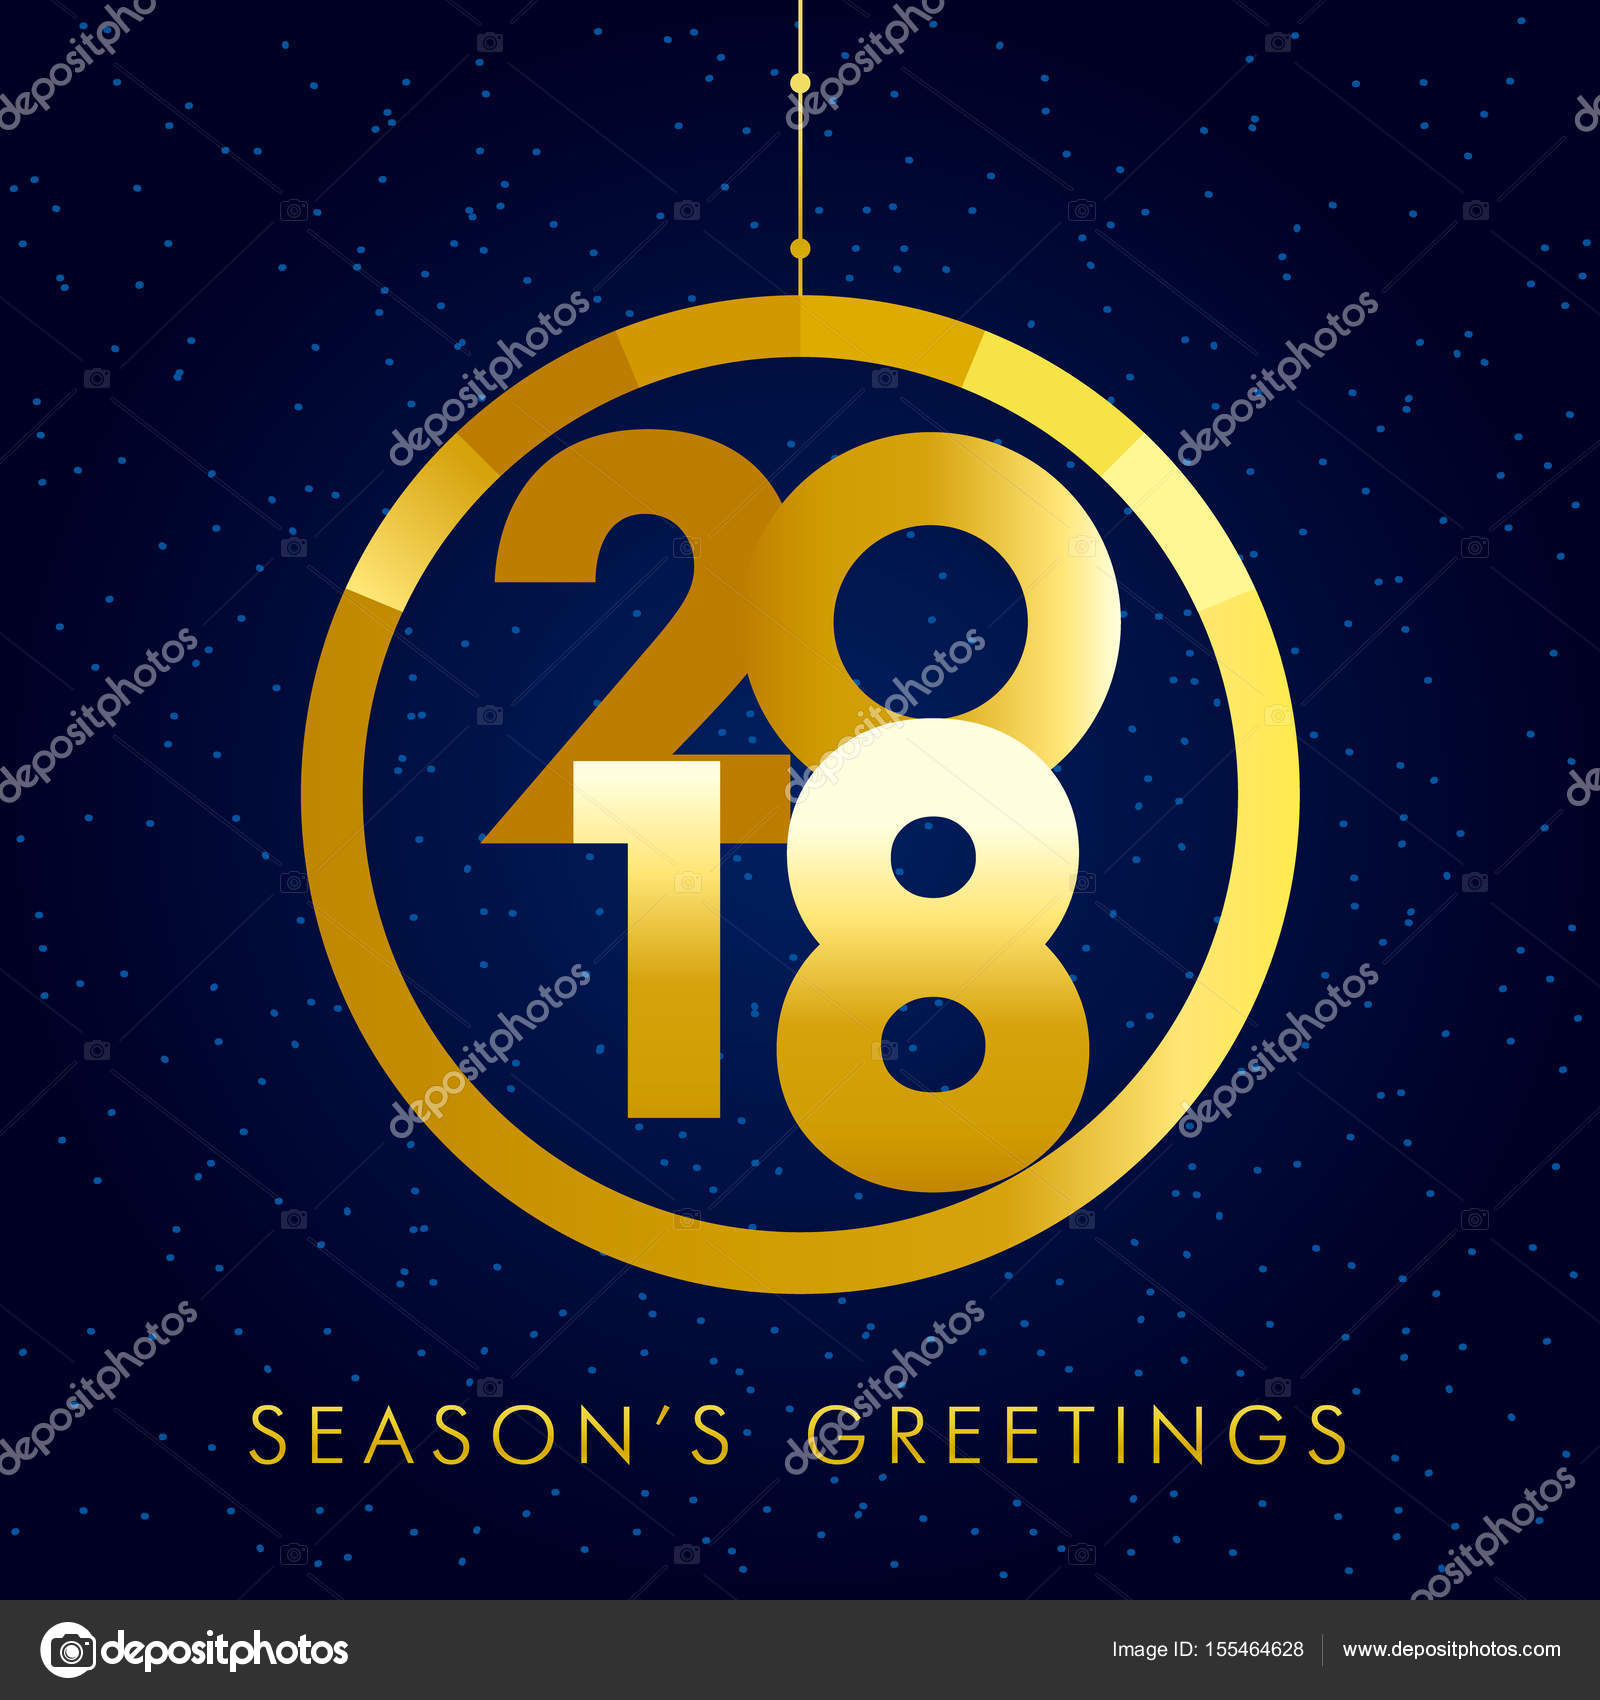 2018 seasons greetings gold happy new year card stock vector 2018 seasons greetings gold happy new year card stock vector m4hsunfo